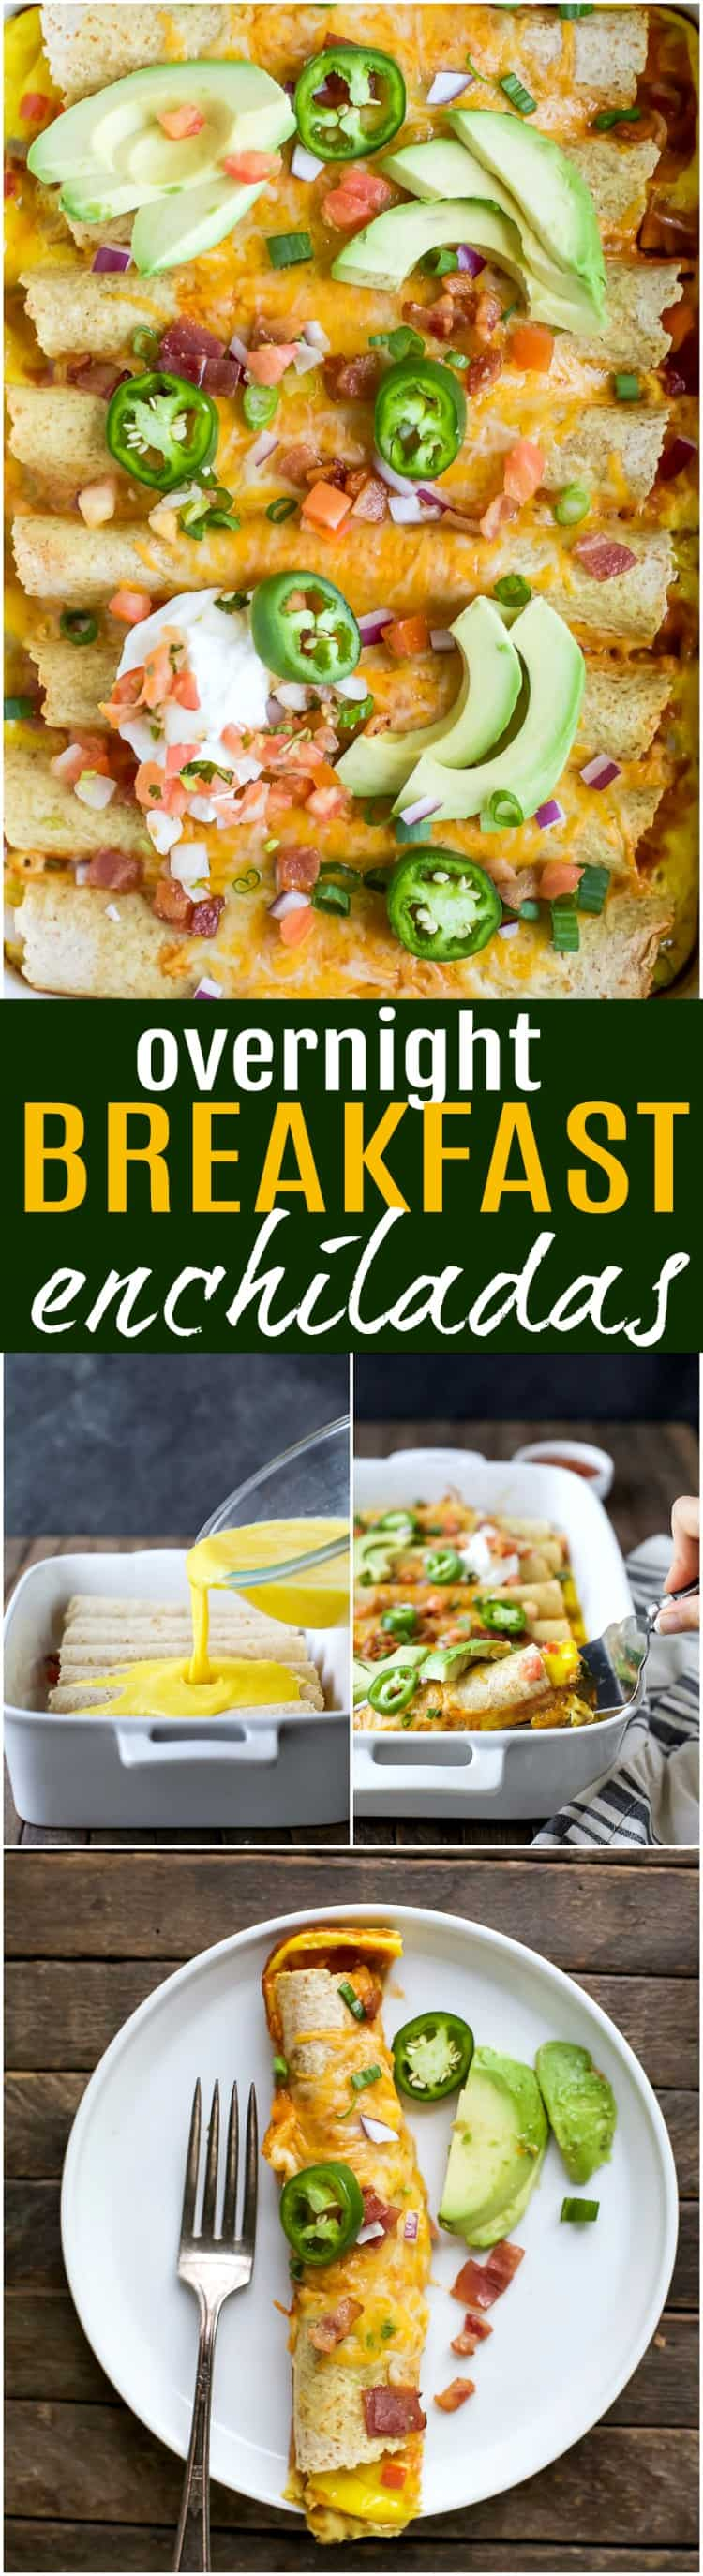 Overnight Breakfast Enchiladas | Easy Healthy Recipes ...